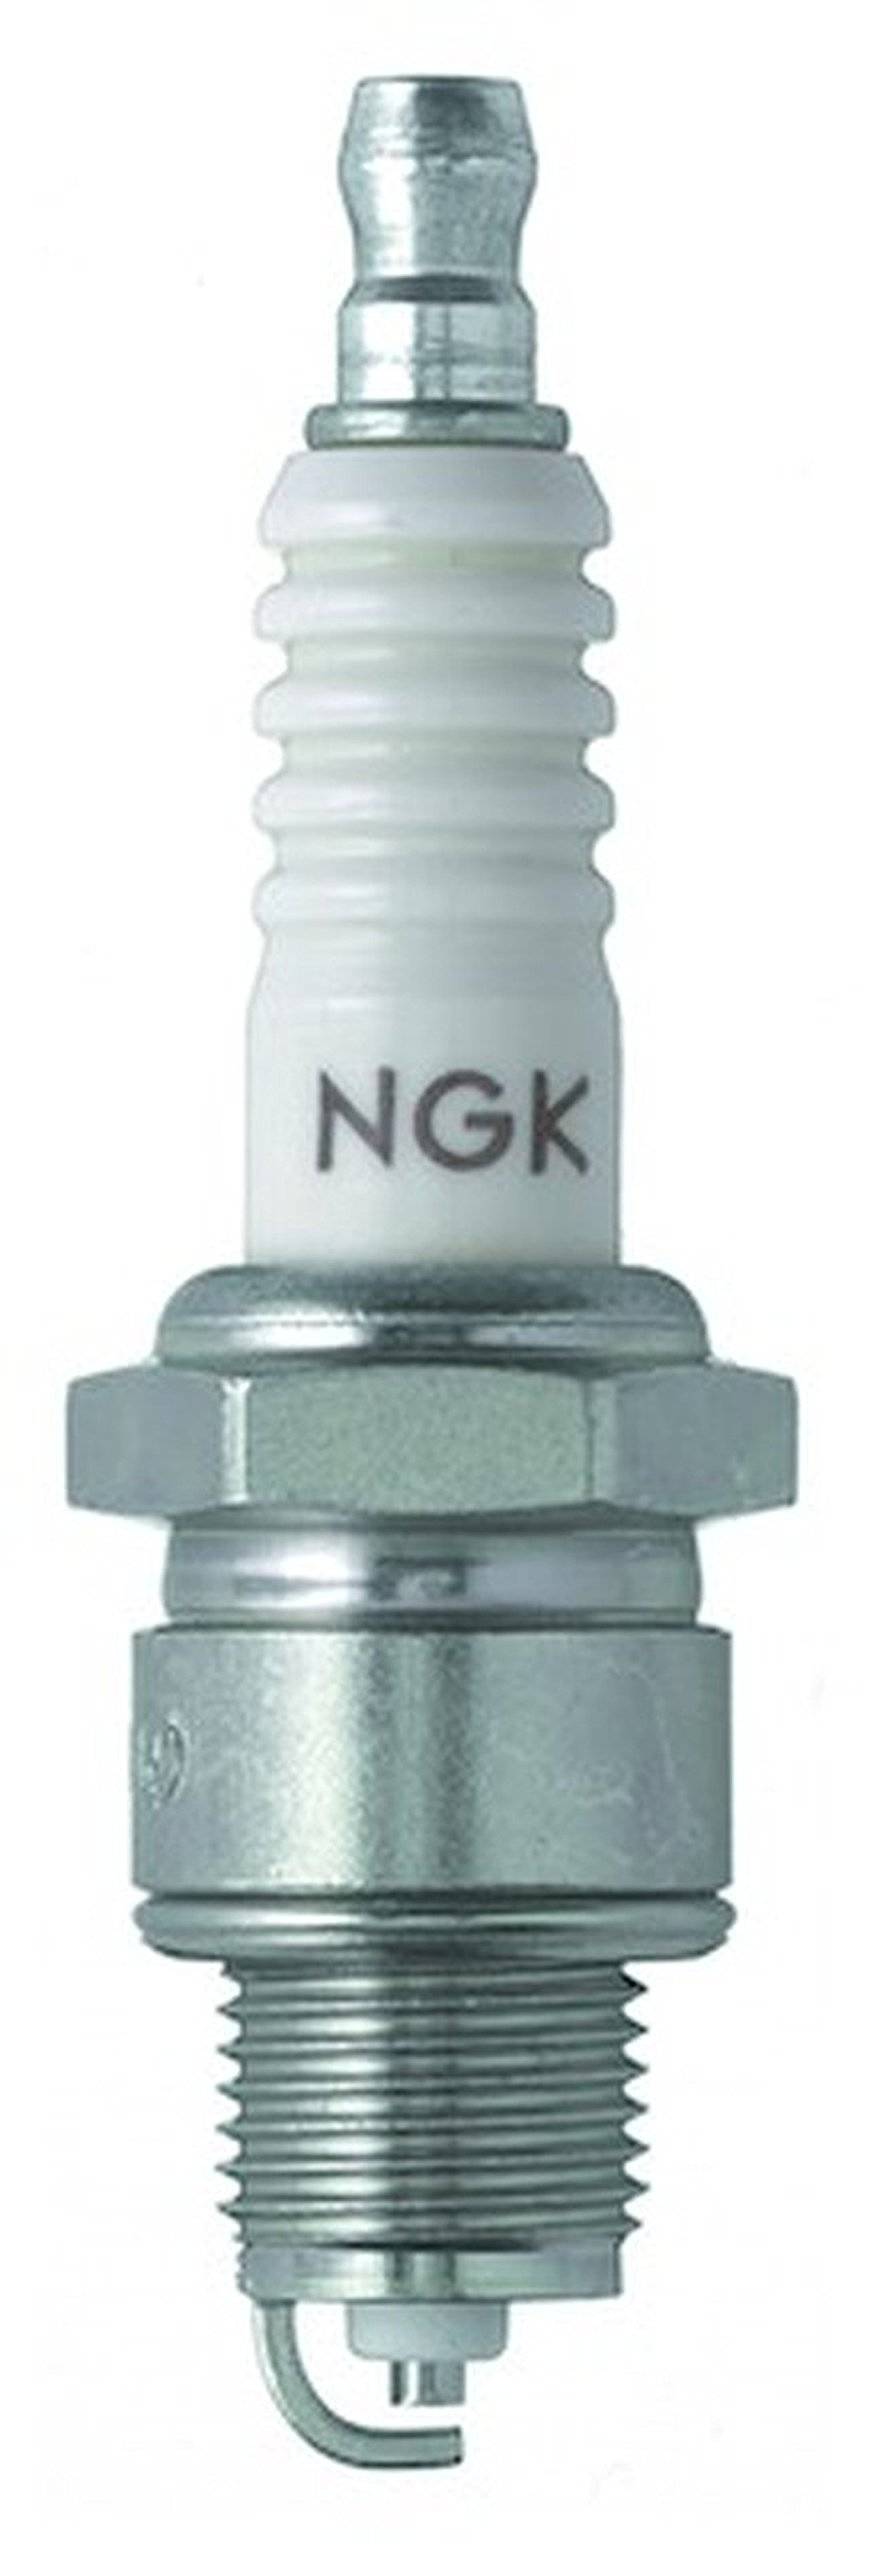 NGK Spark Plugs INC BR8HS Boat Spark Plugs